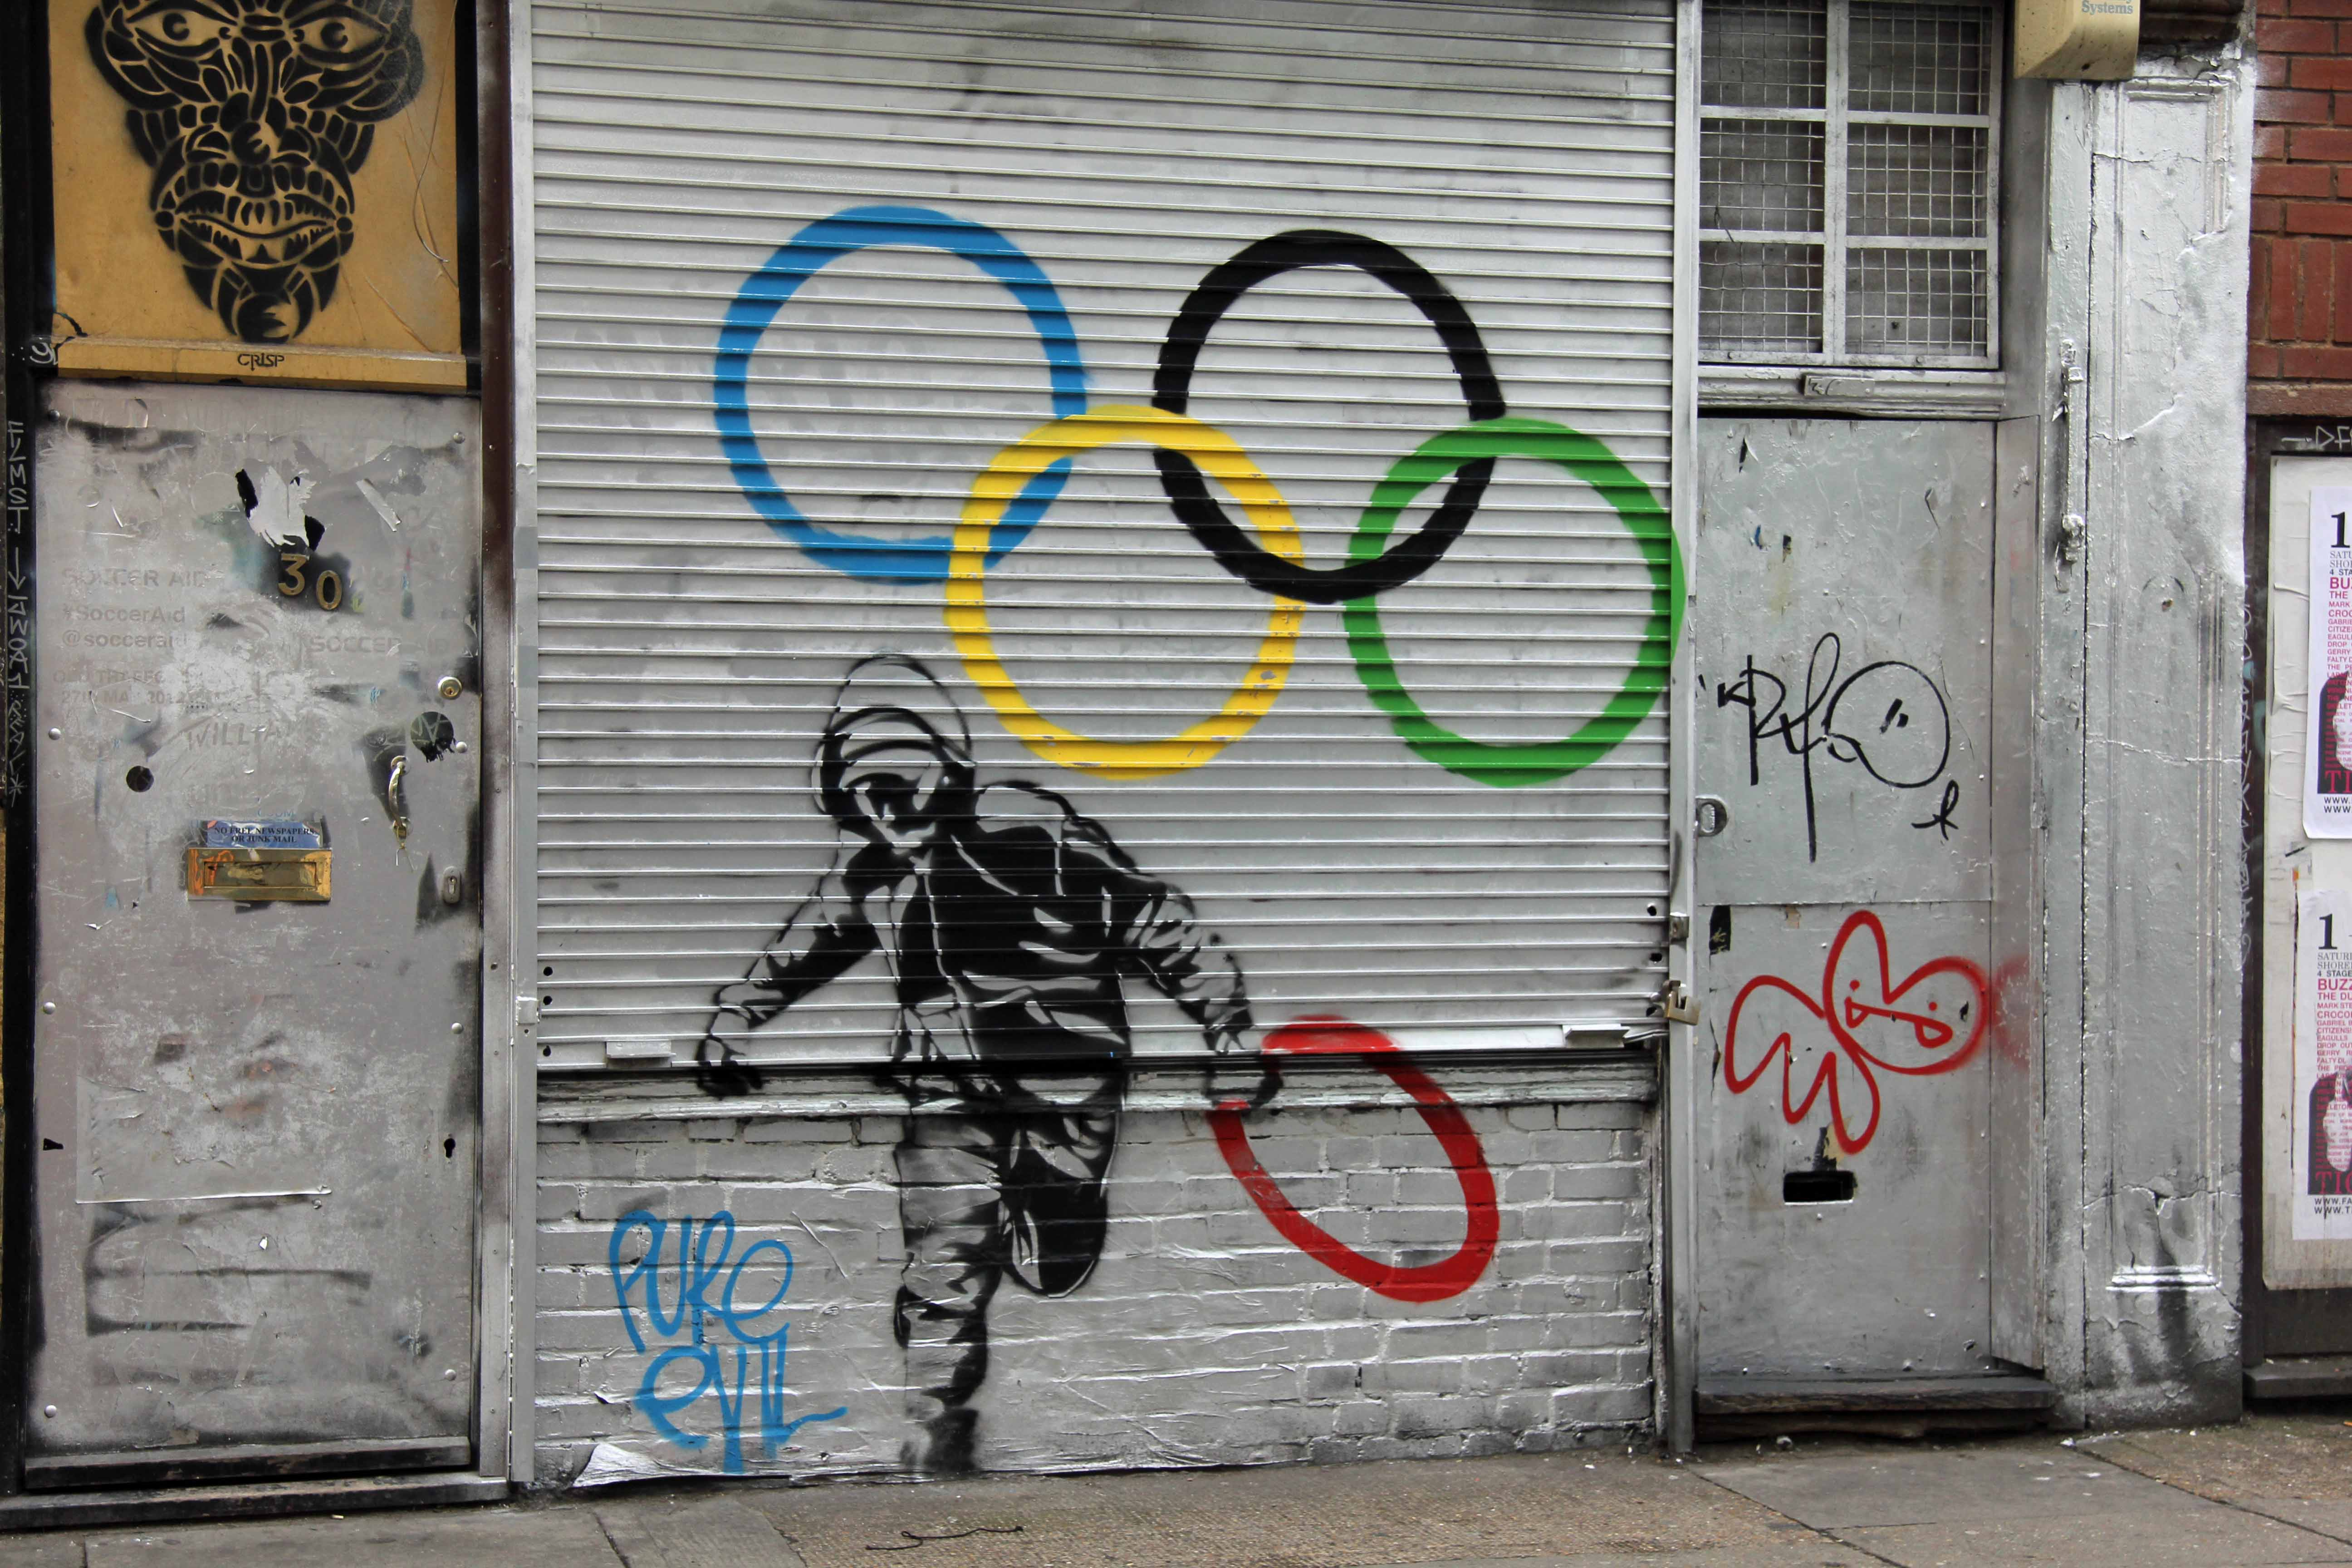 Ring Thief: Olympic inspired Street Art by Pure Evil in London